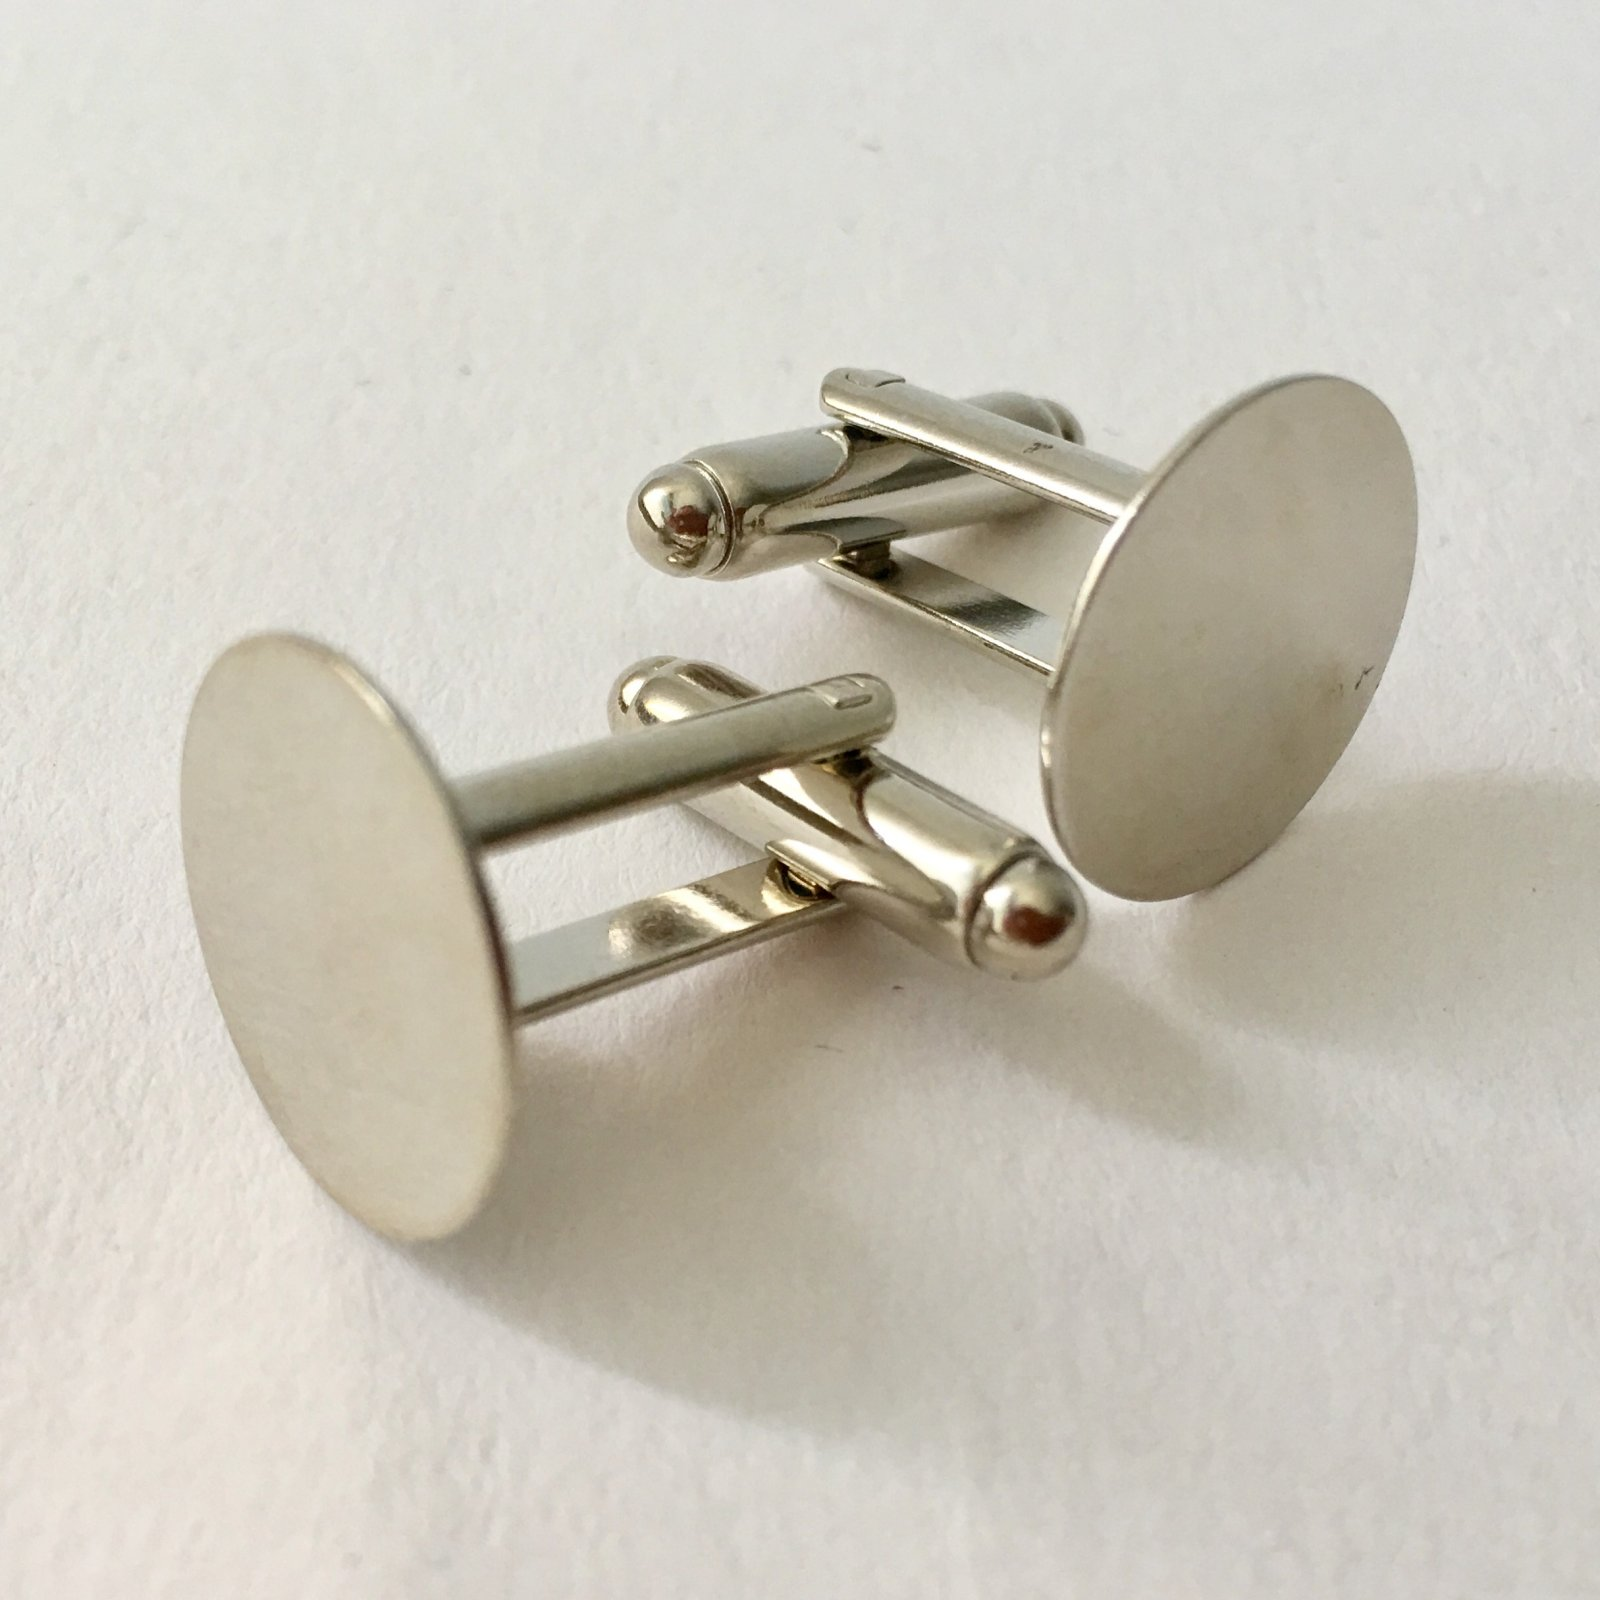 Cuff Link Blanks - 2 Pair